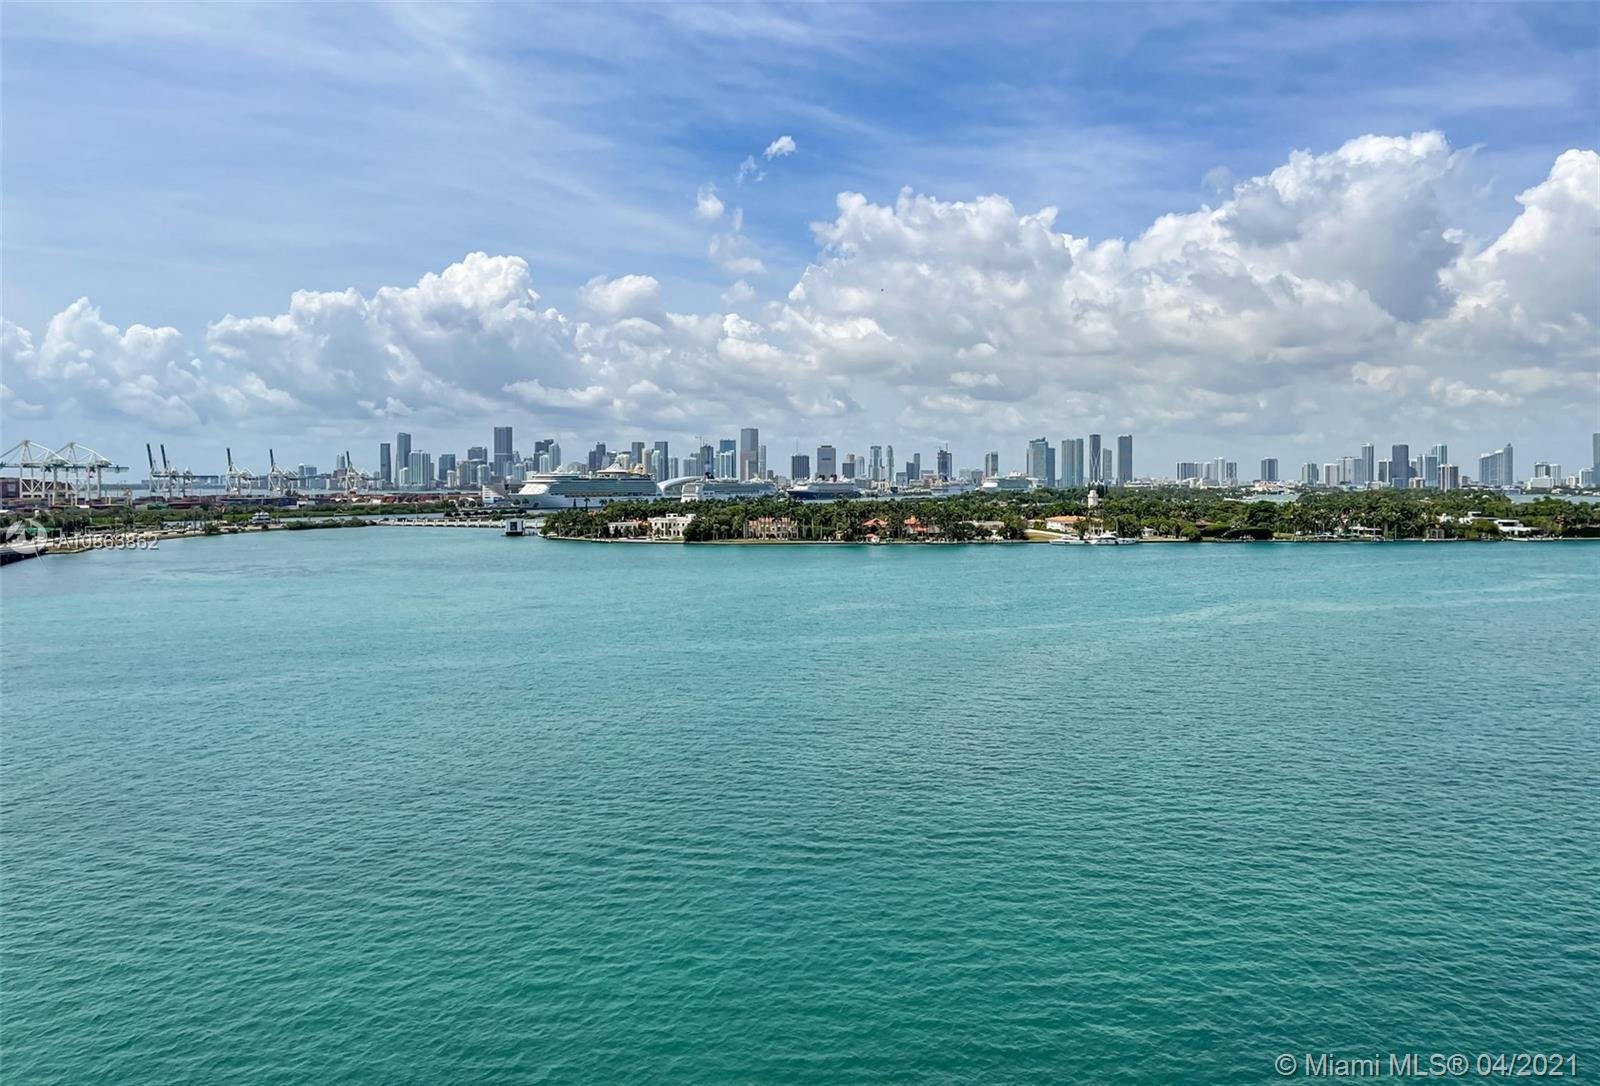 Stunning Views – 1 bedroom, 1 bath condo located in the heart of South Beach. Enjoy sweeping views of Biscayne Bay, the Downtown skyline, and watch cruise ships sail out to sea. European-designed kitchen with top of the line stainless steel appliances, marble bathrooms, large private balcony, and floor-to-ceiling windows offering an abundance of natural light.  This unit is located in a modern, boutique bayfront building offering resort-style amenities.